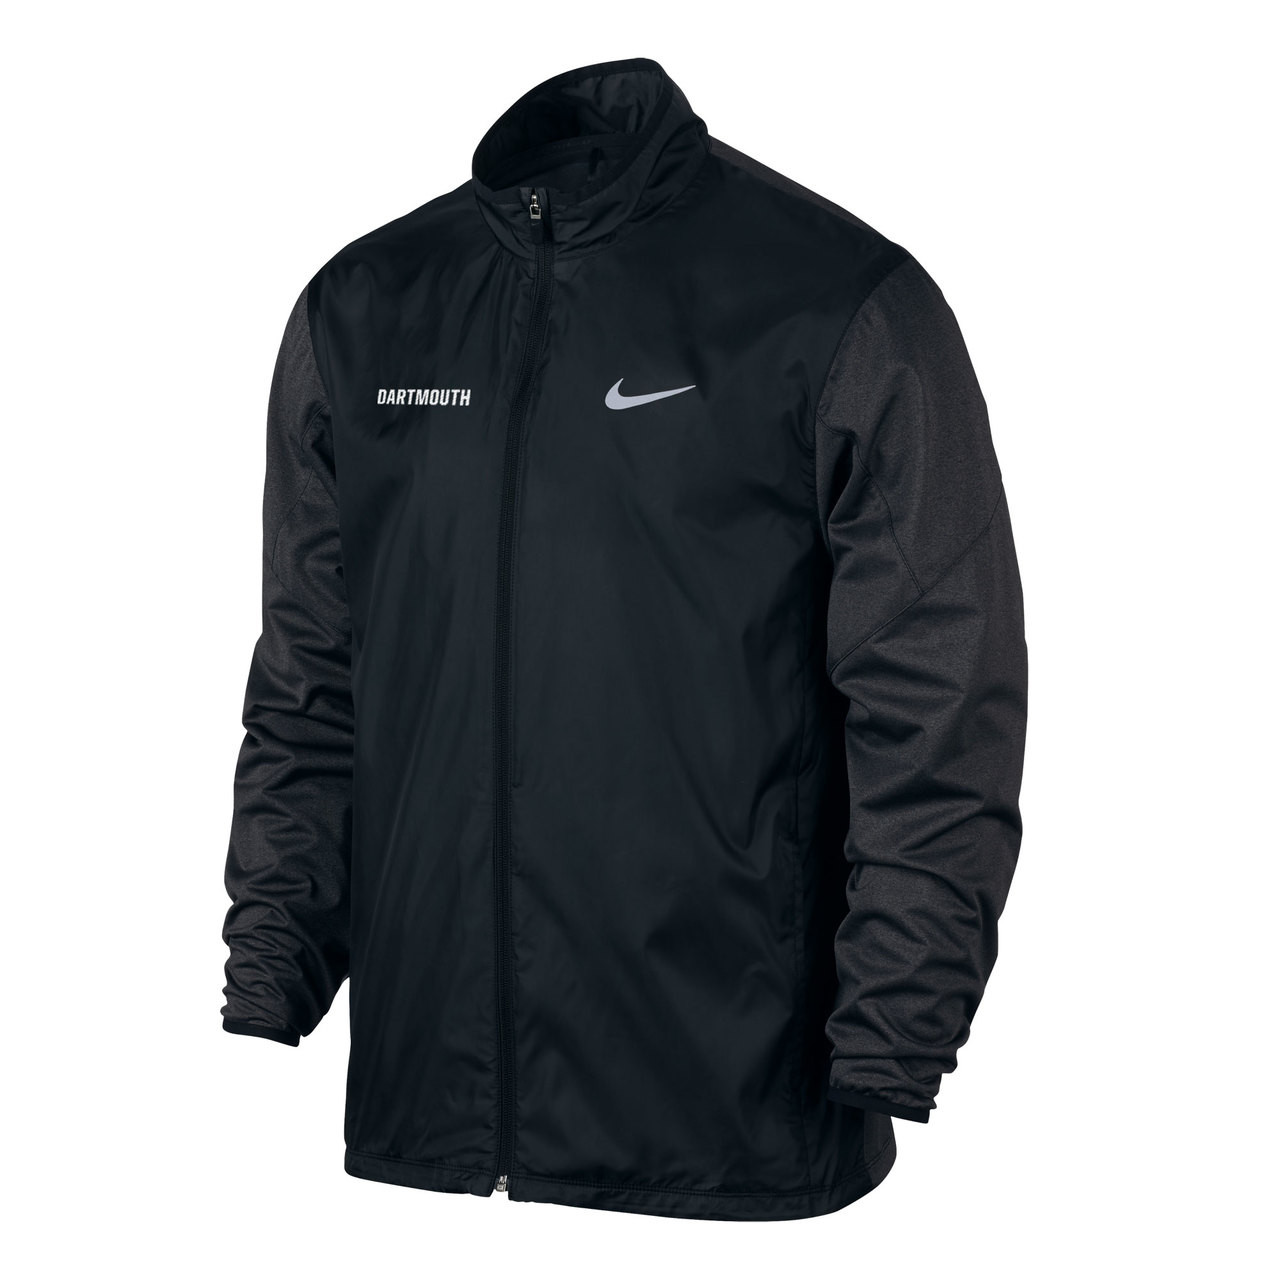 447013a9c70d Nike black full zip windbreaker with small white  Dartmouth  on right side  and small